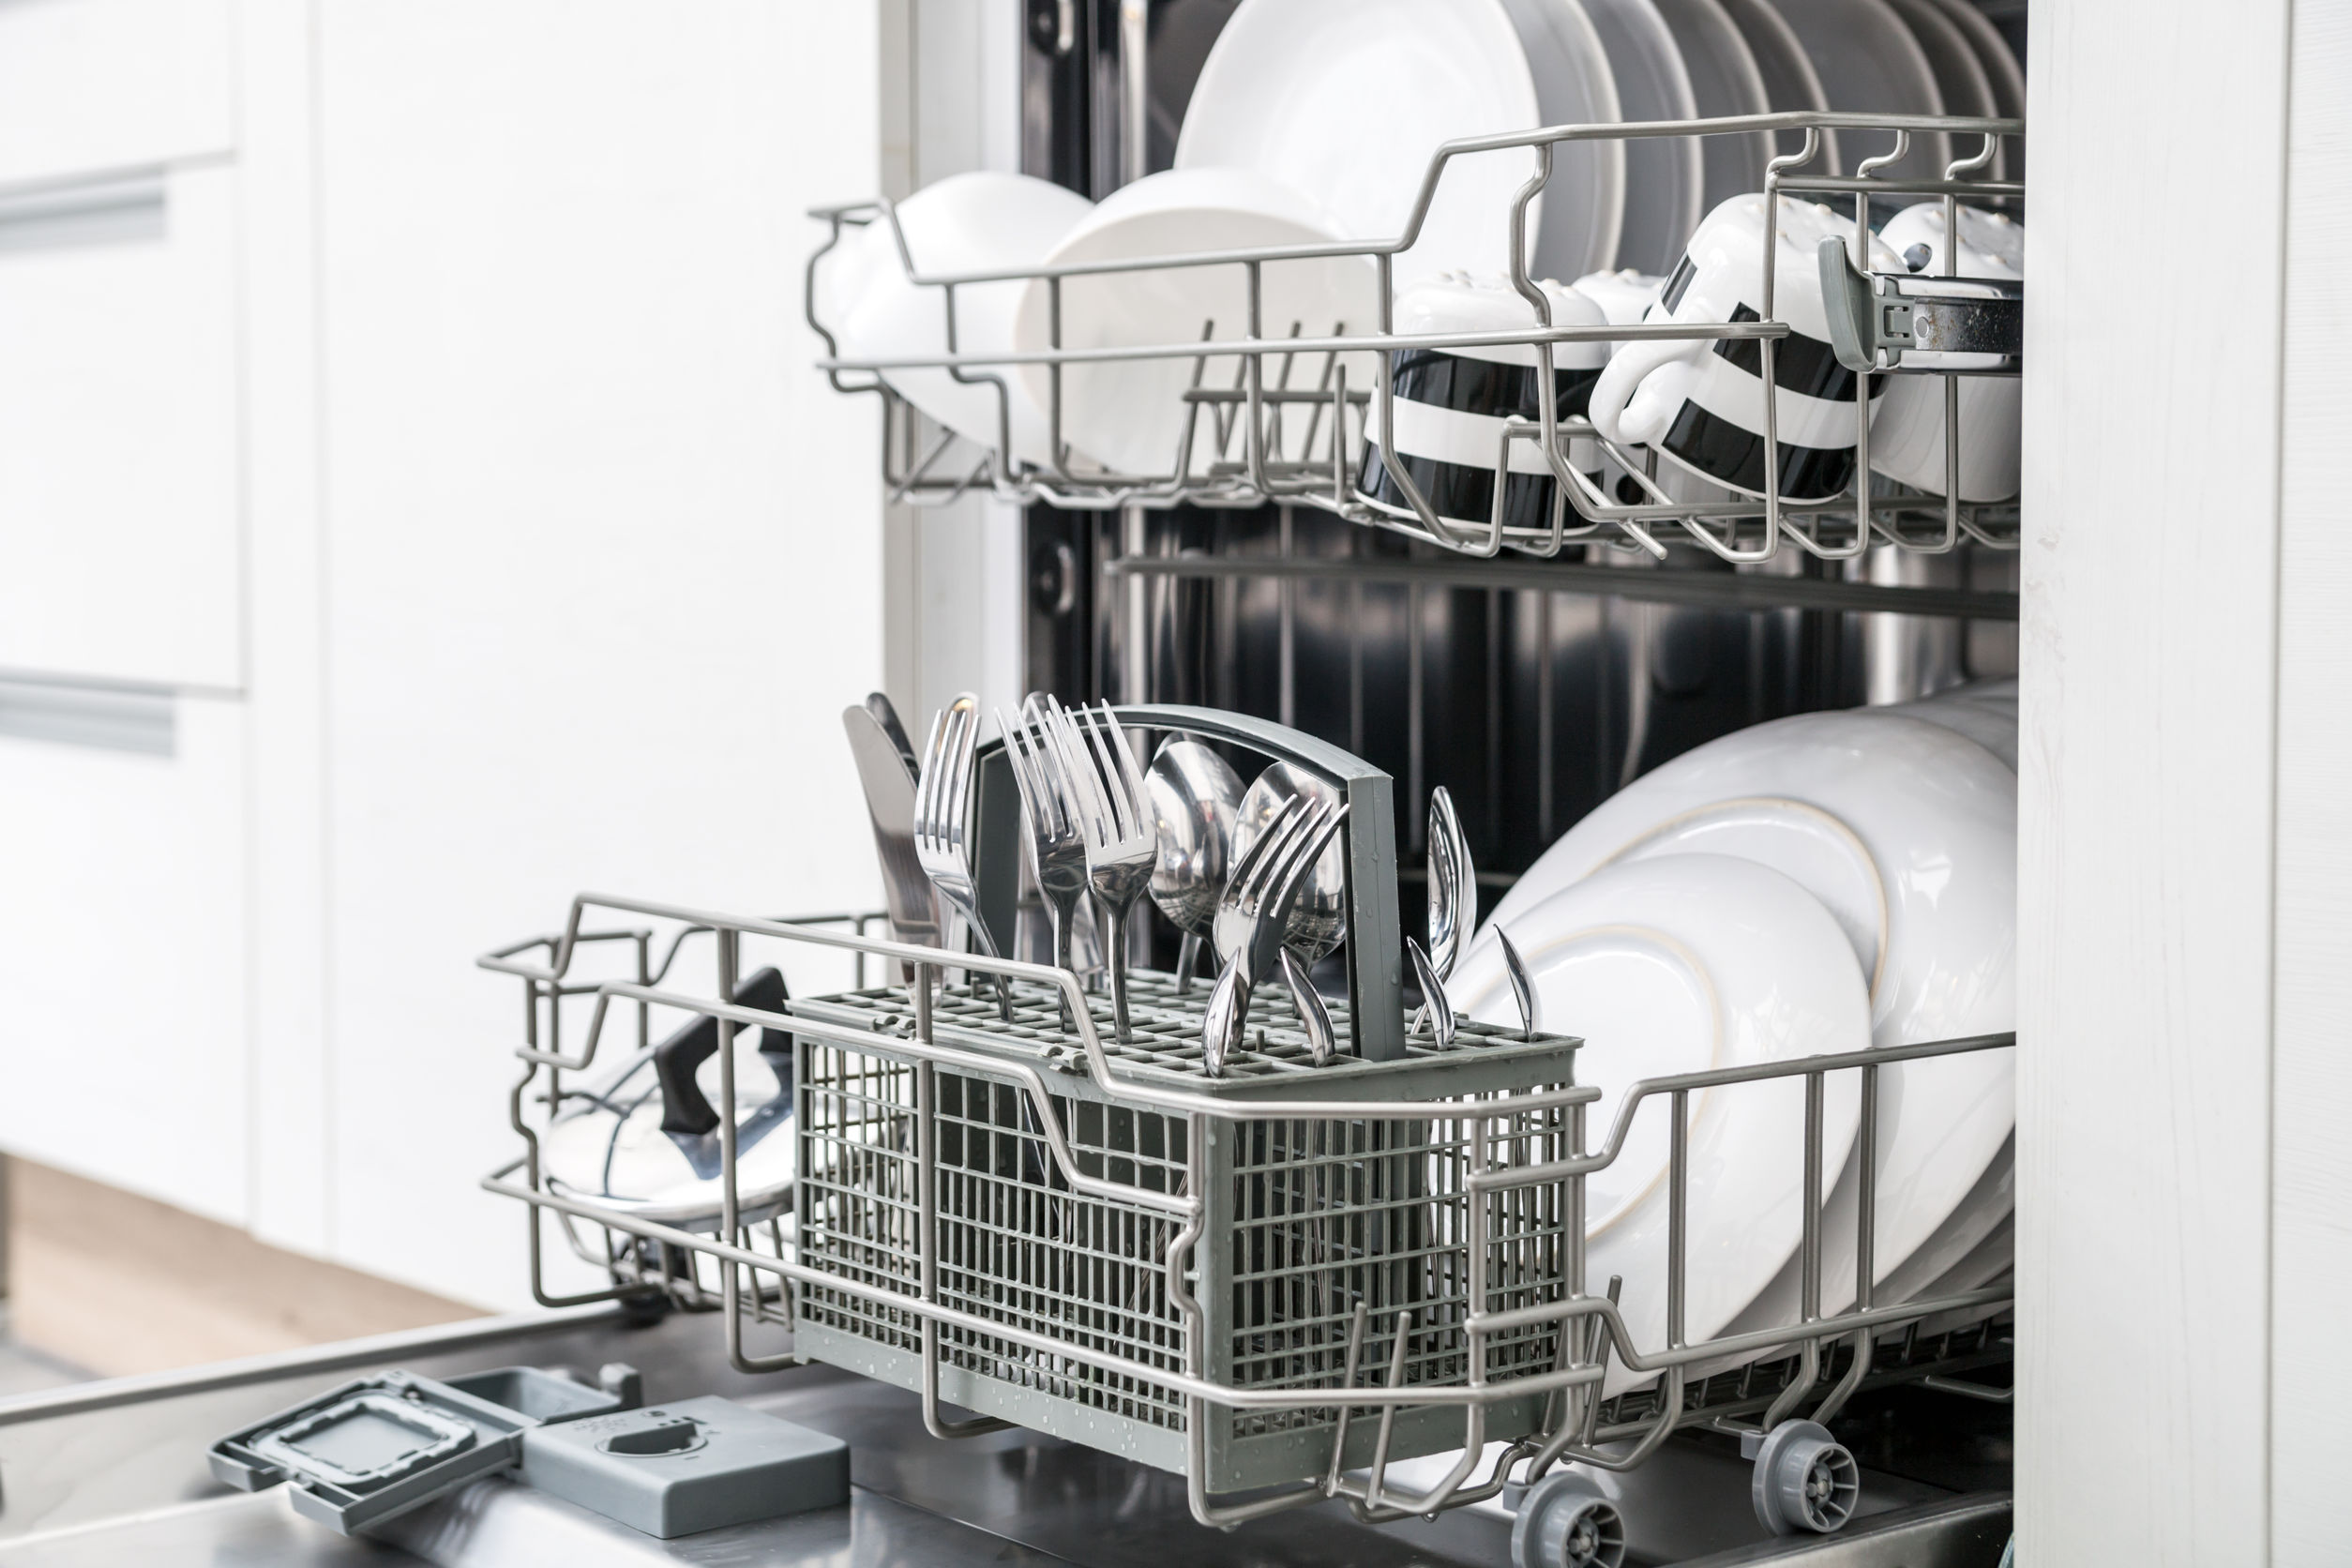 Neff Dishwasher: Shopping Guide and Recommendations (09/21)